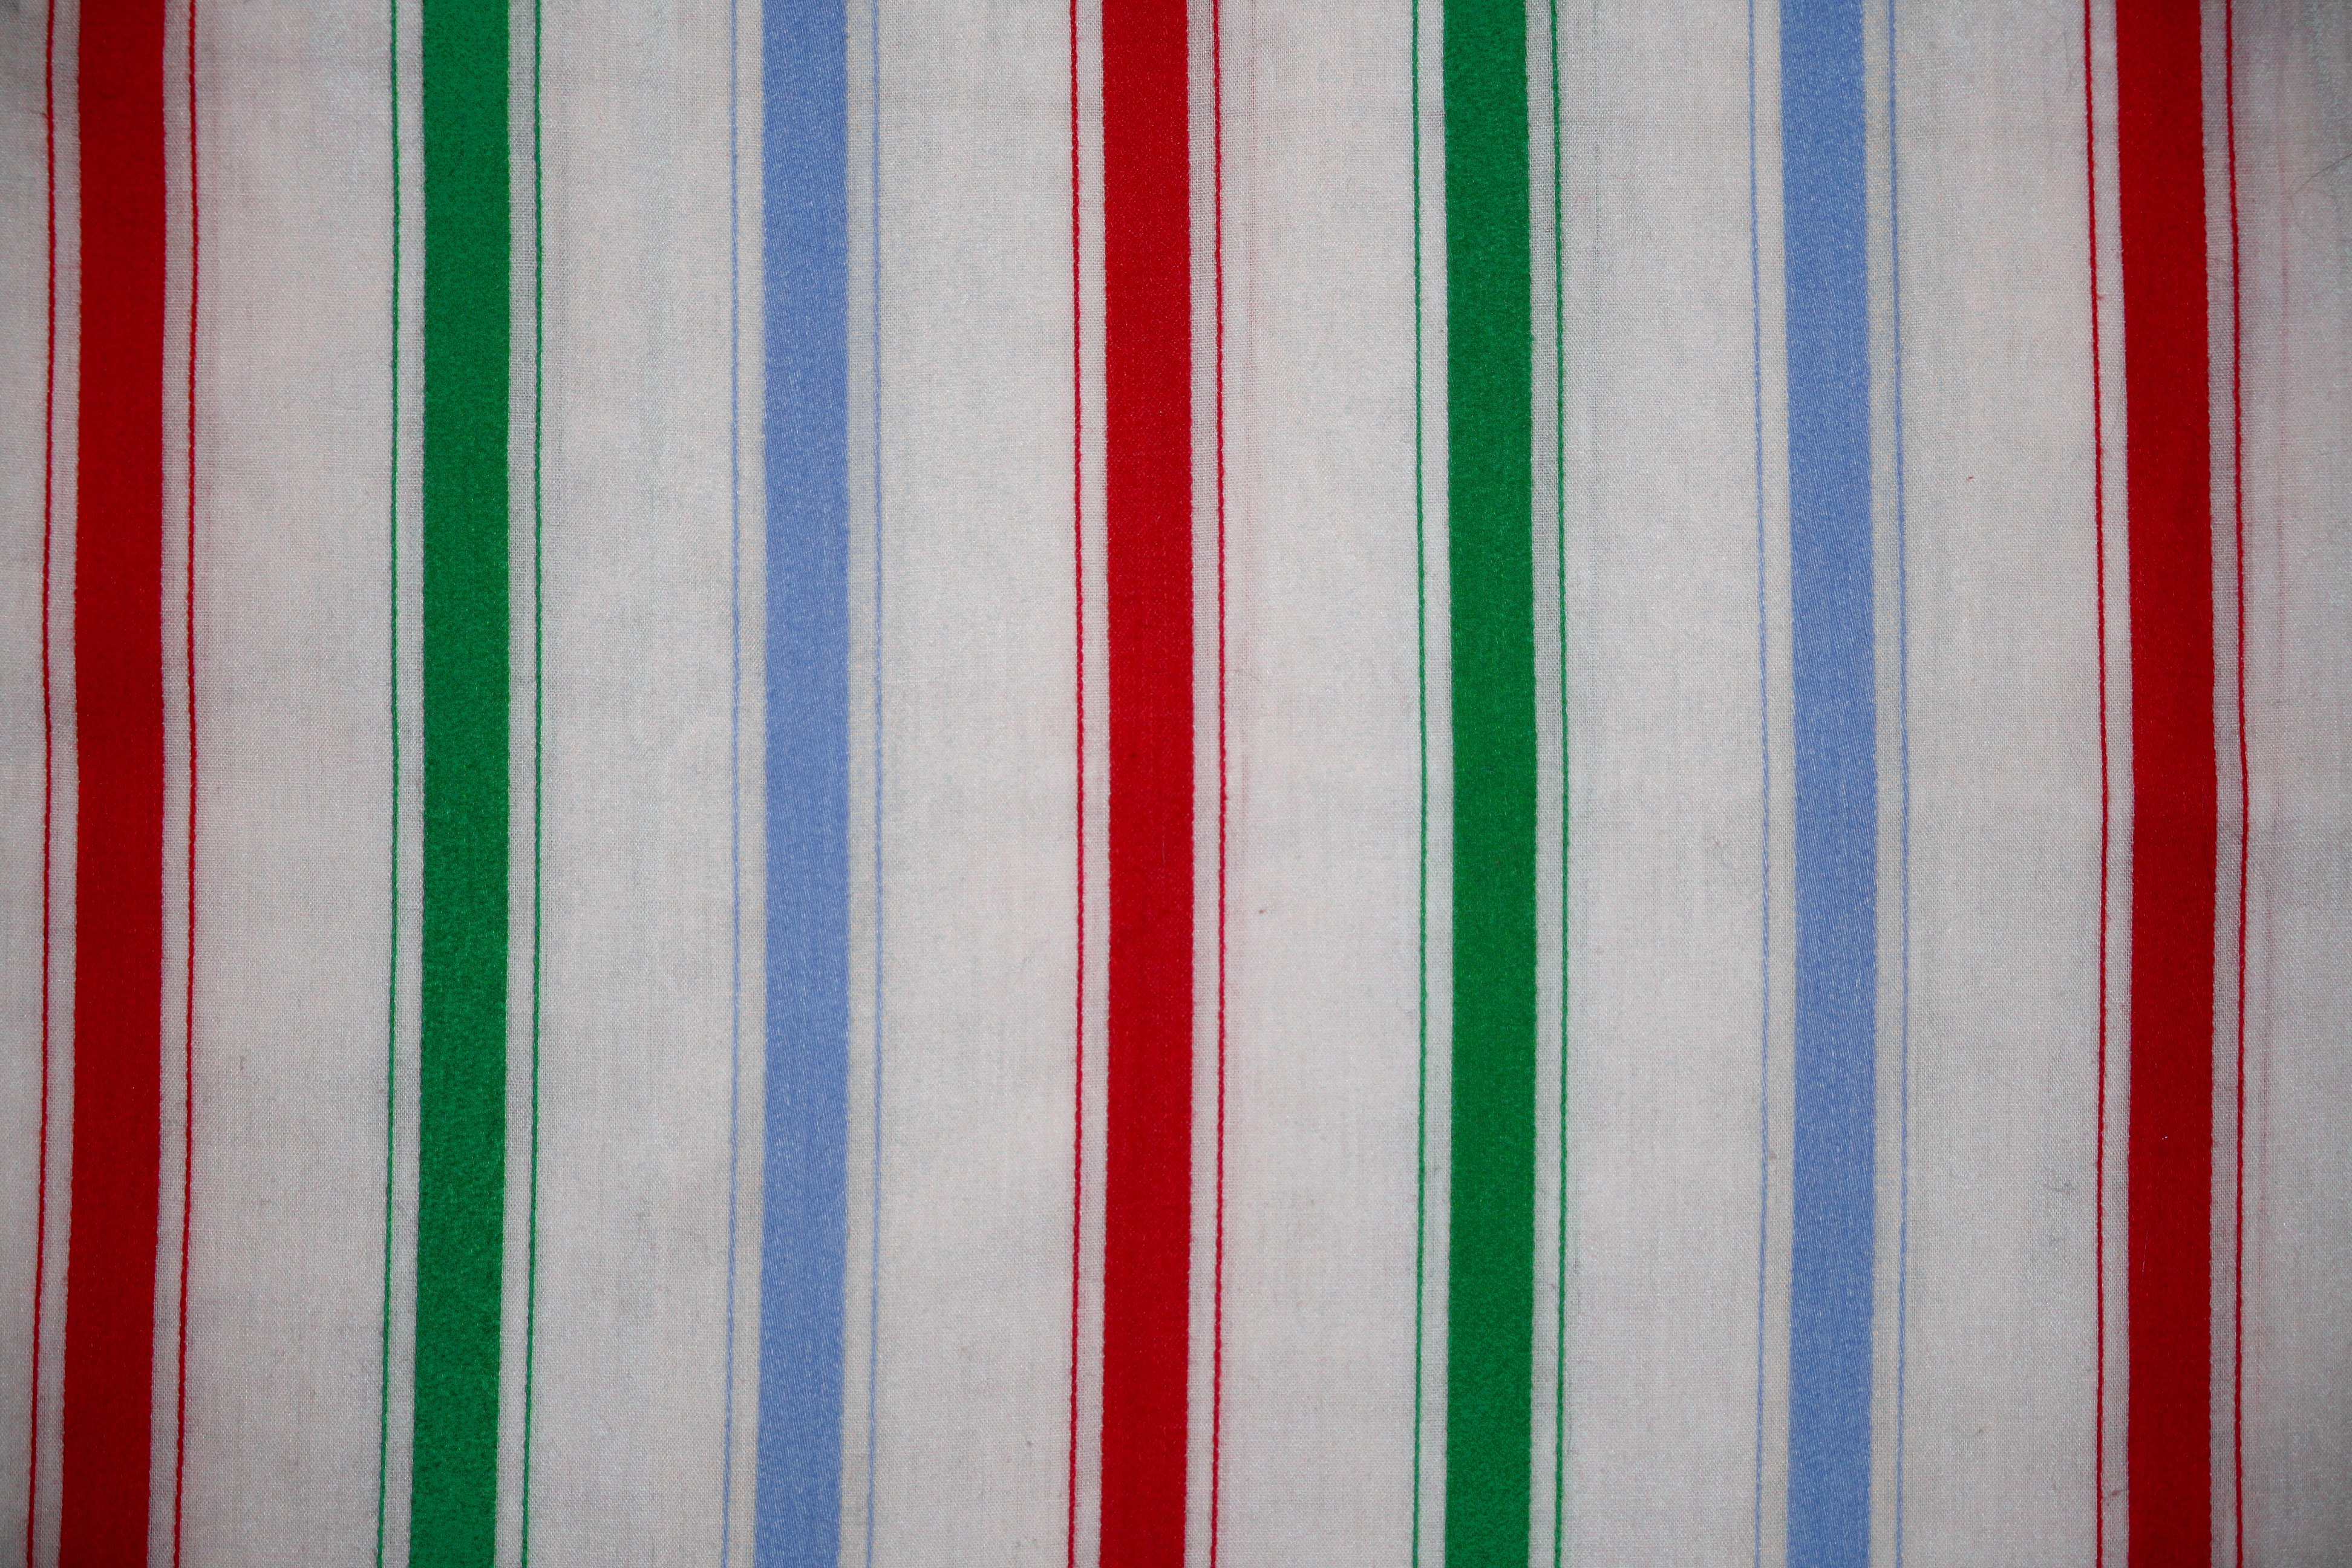 Stripe Blue Green And White: Striped Fabric Texture Green, Blue And Red On White